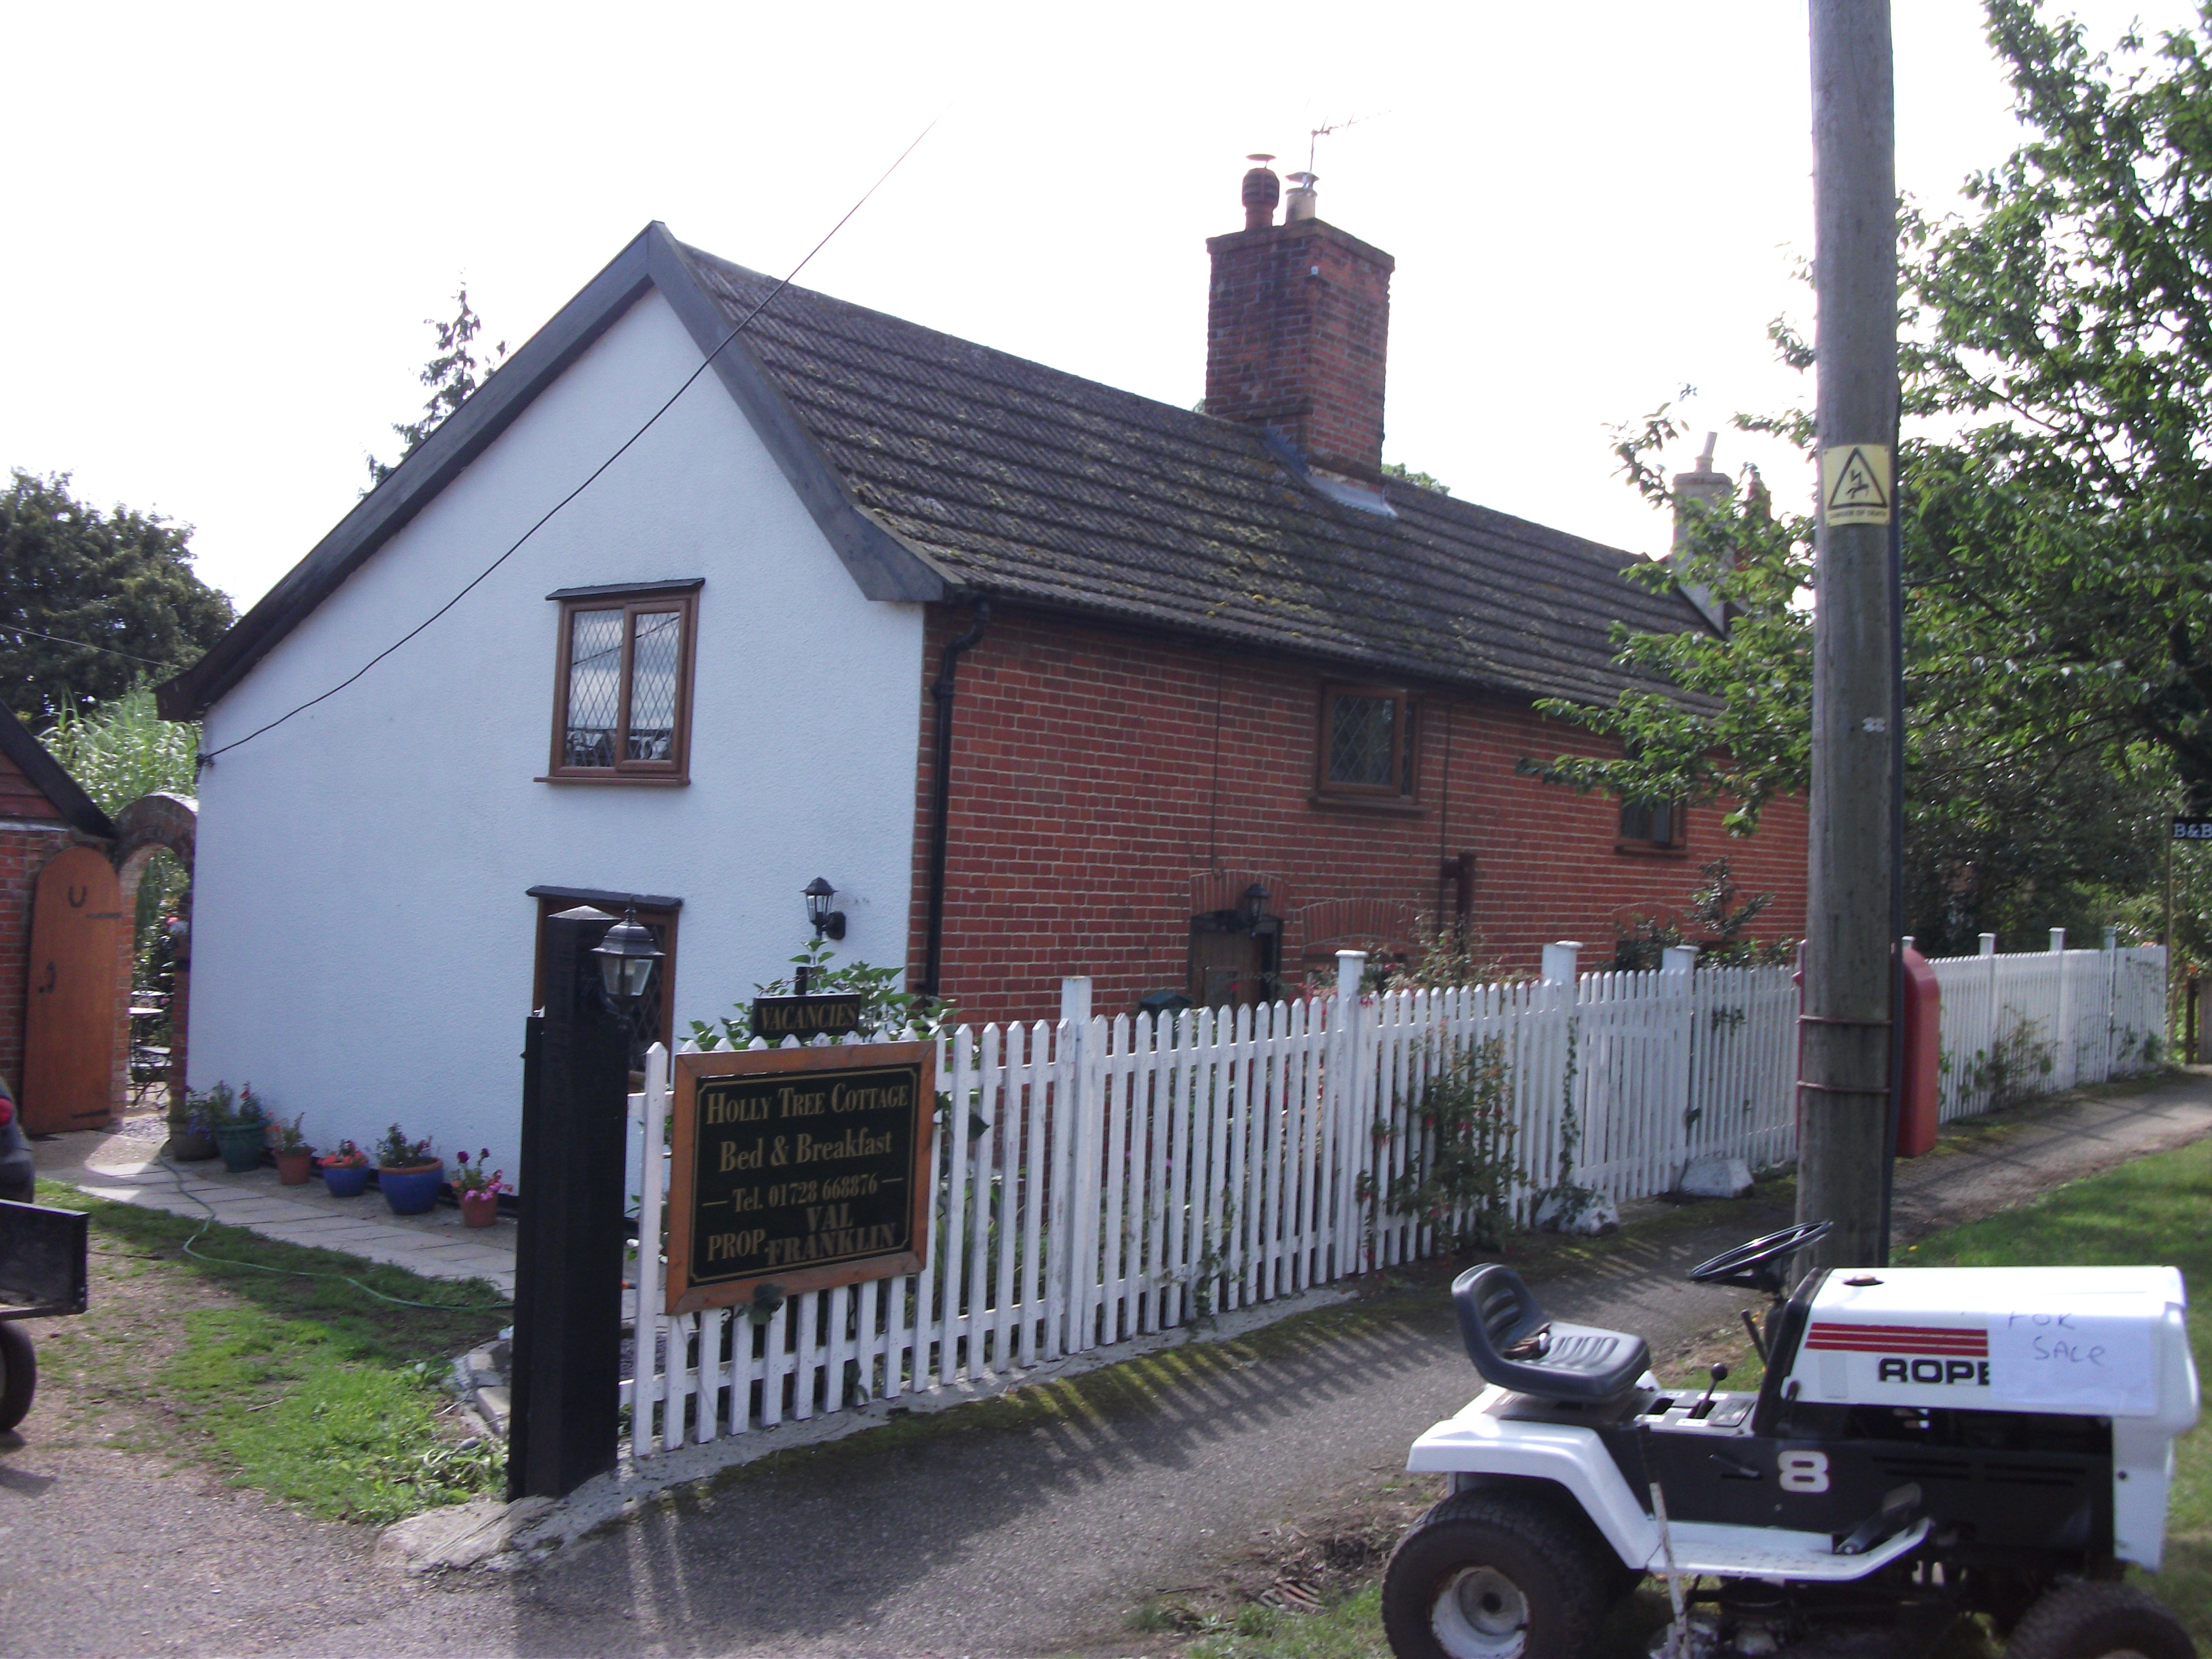 Holly Tree Cottage